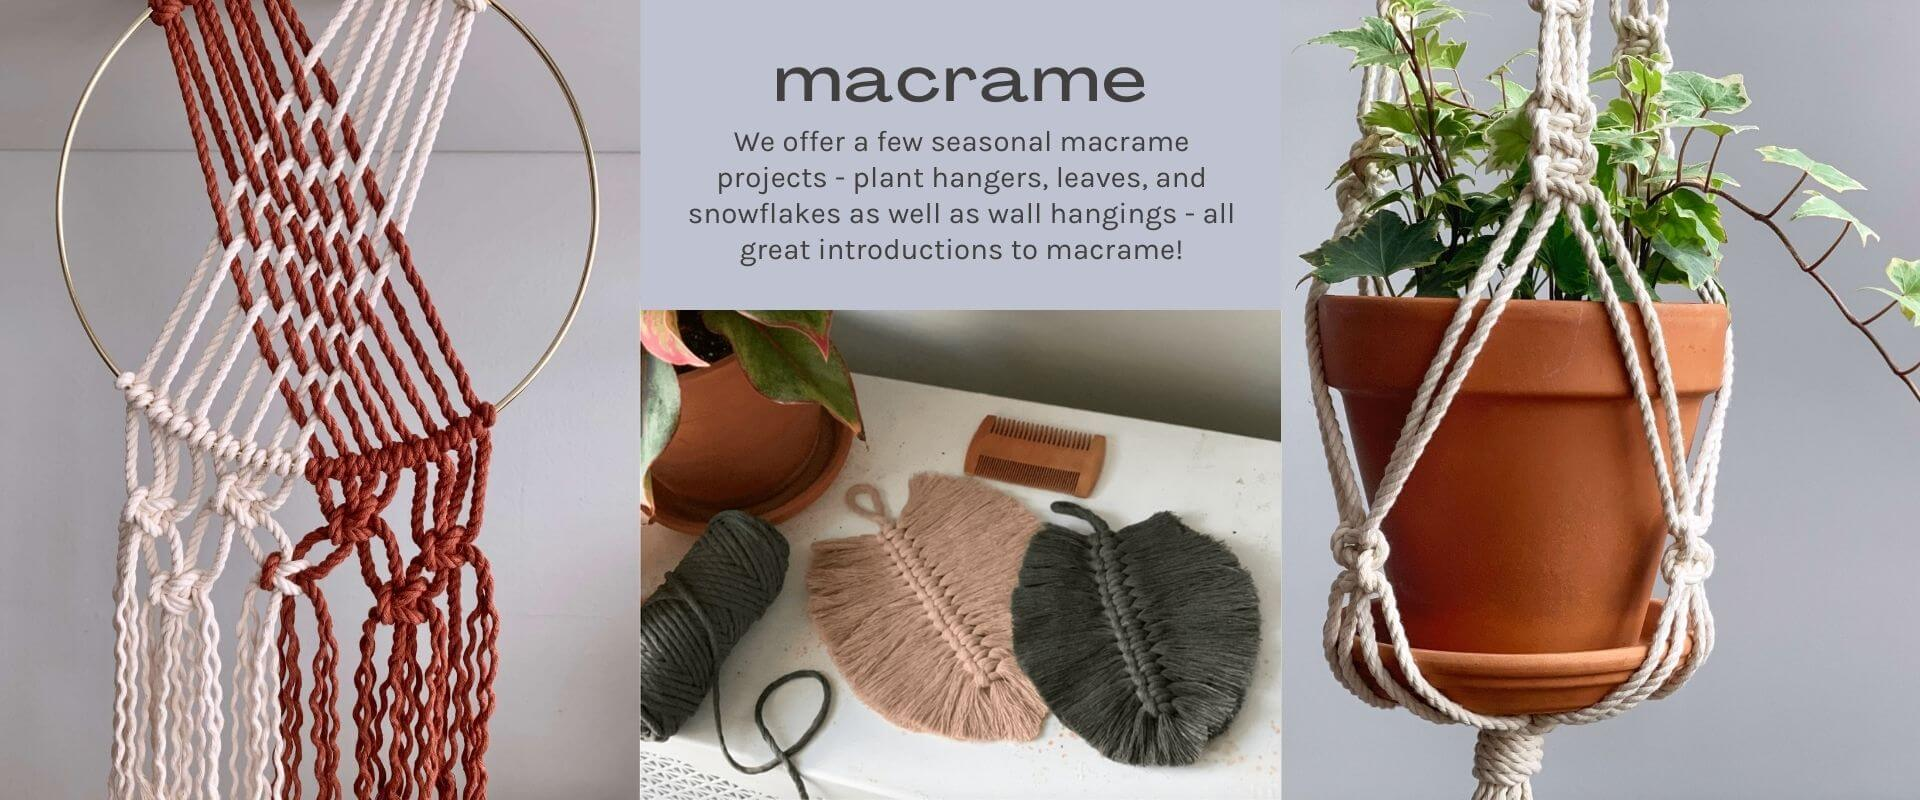 macrame projects - images of white and copper wall hanging, blush and green leaves, and white plant hanger with terracotta pot